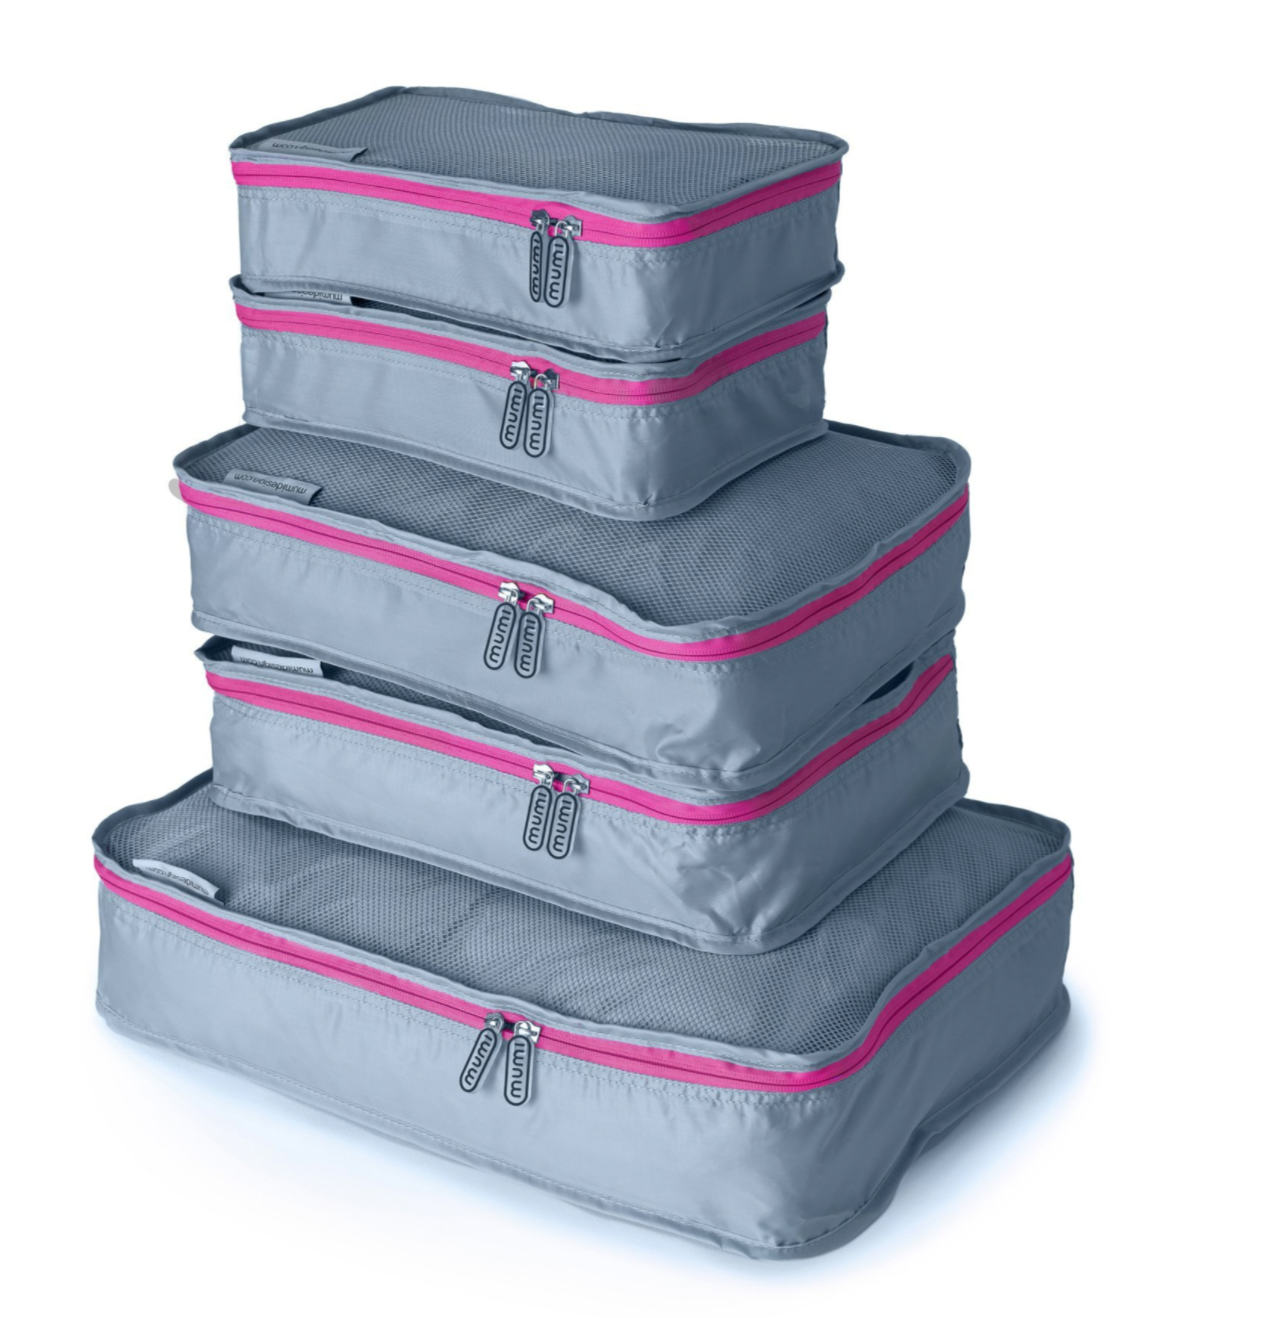 Pink Packing Cube (Set of 5)